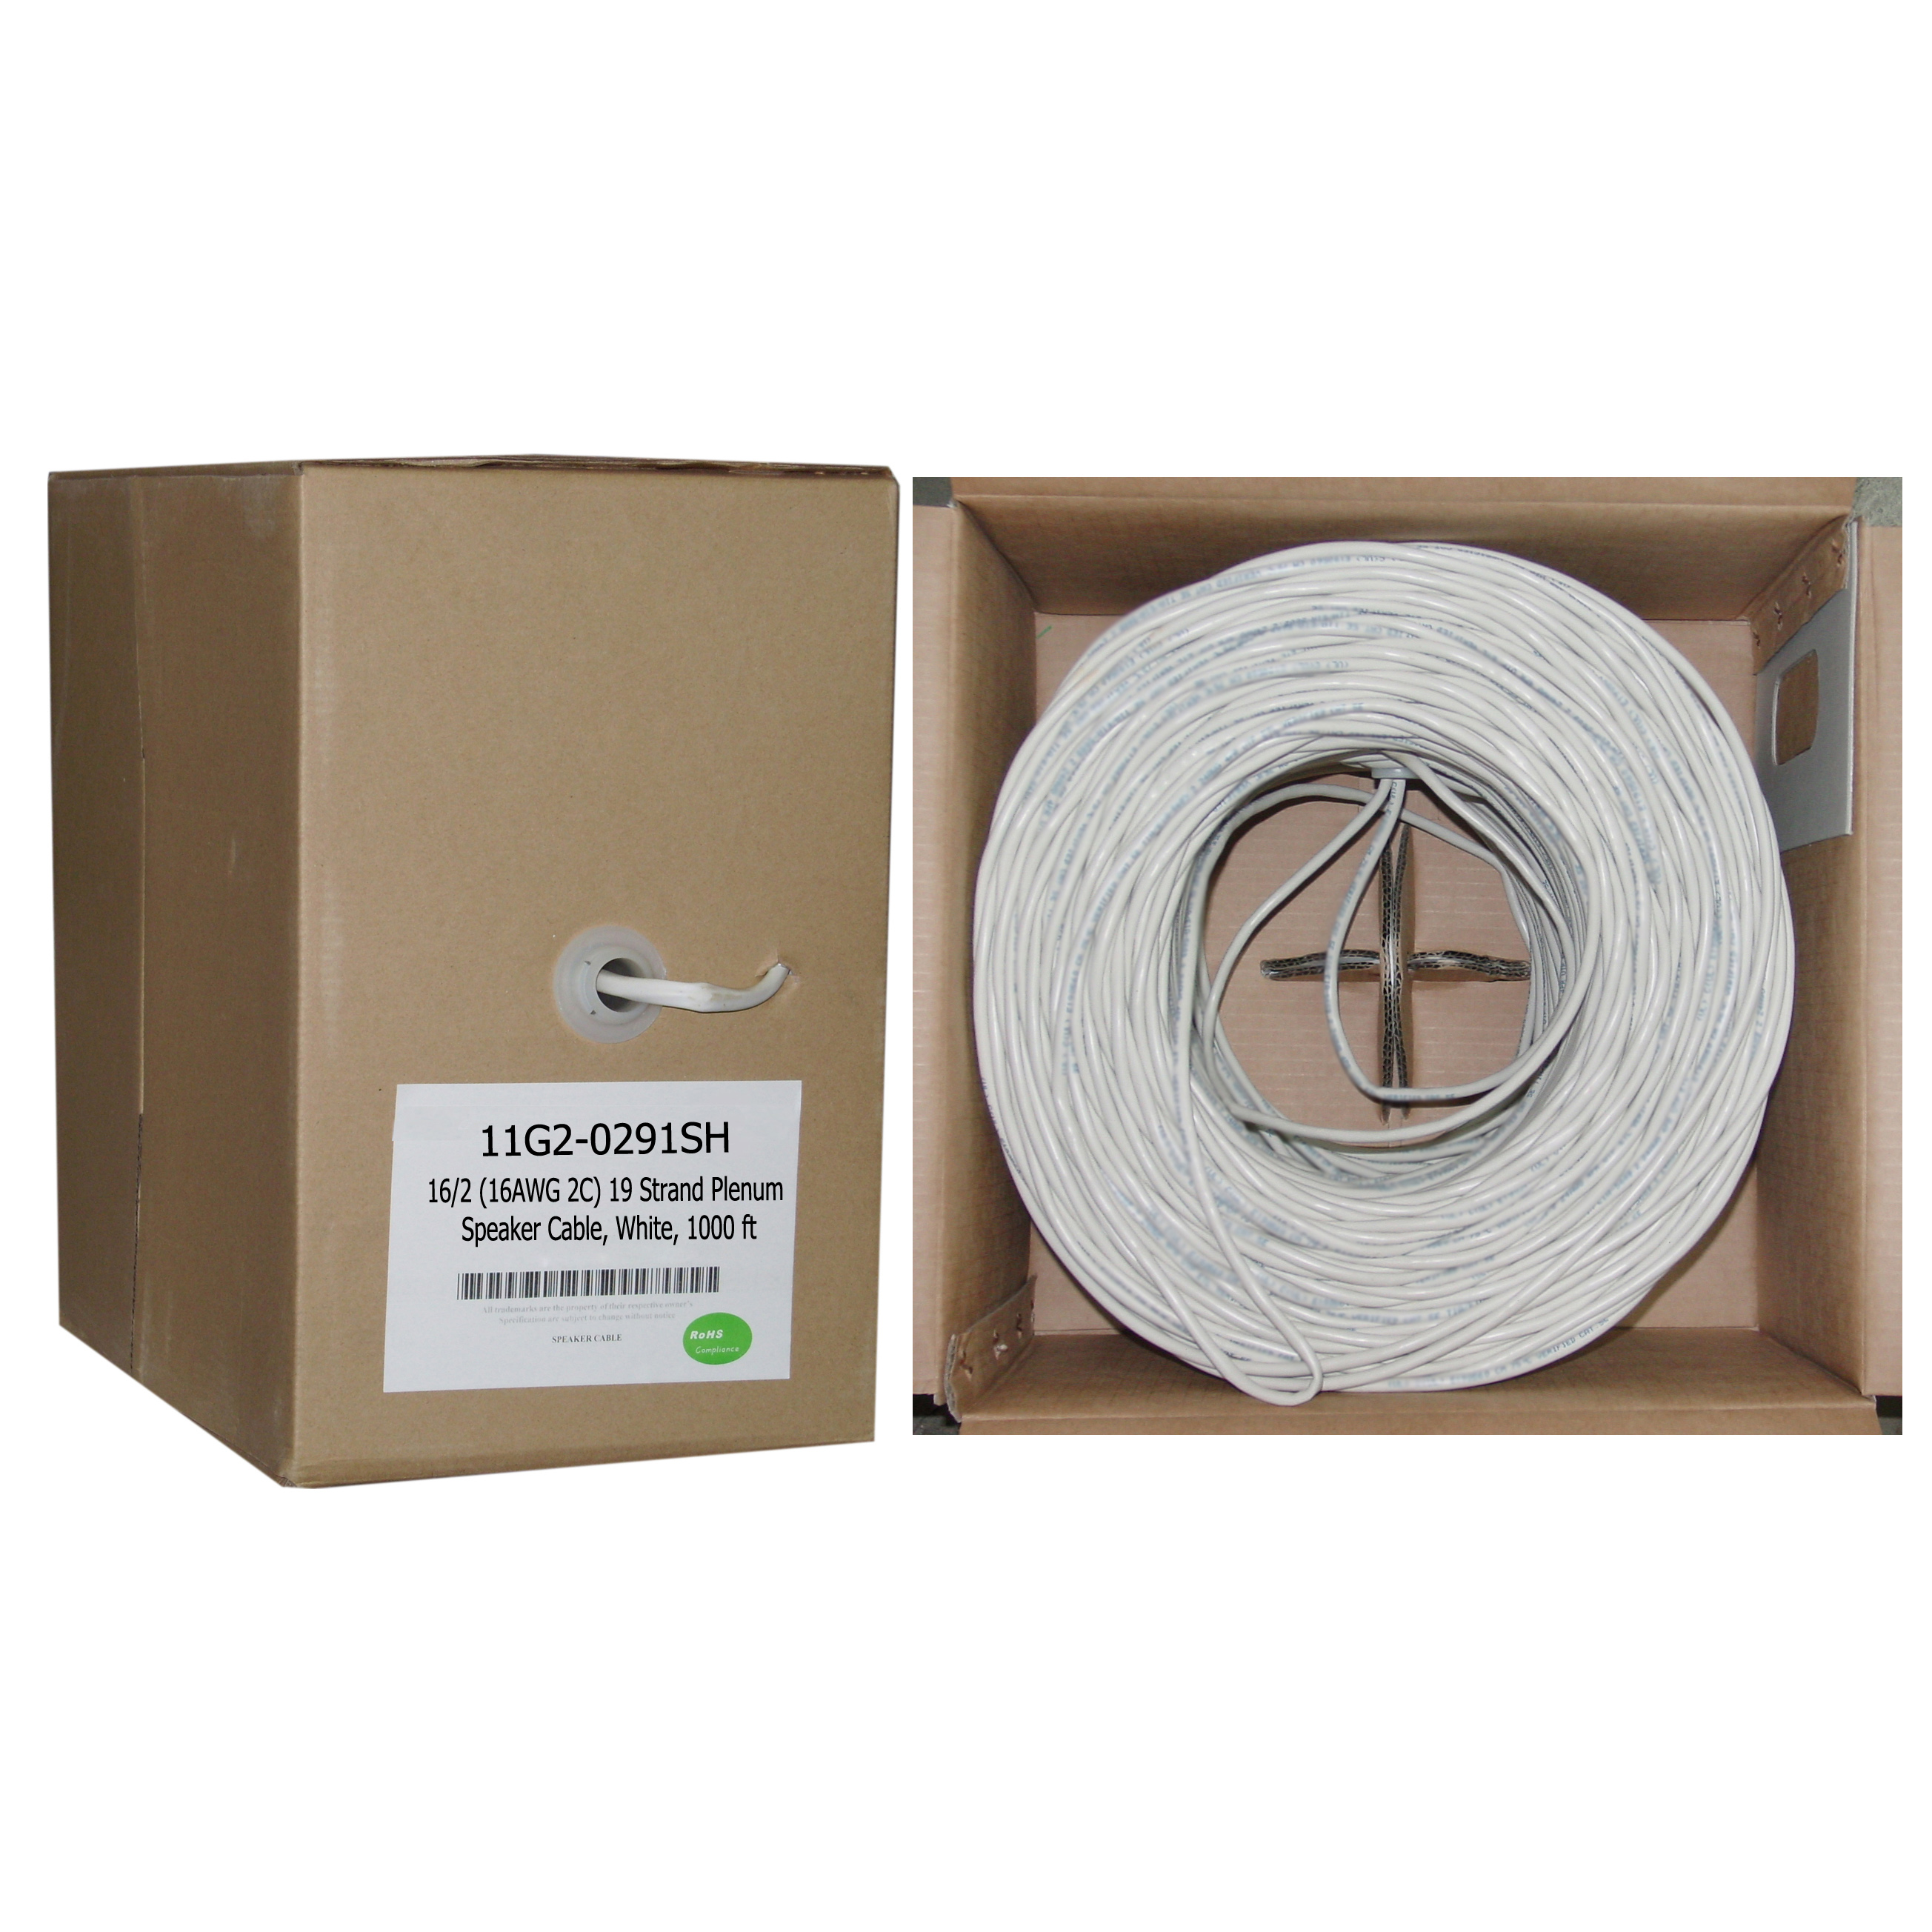 1000ft copper 162 white plenum speaker cable stranded plenum speaker cable white pure copper 162 16 awg 2 keyboard keysfo